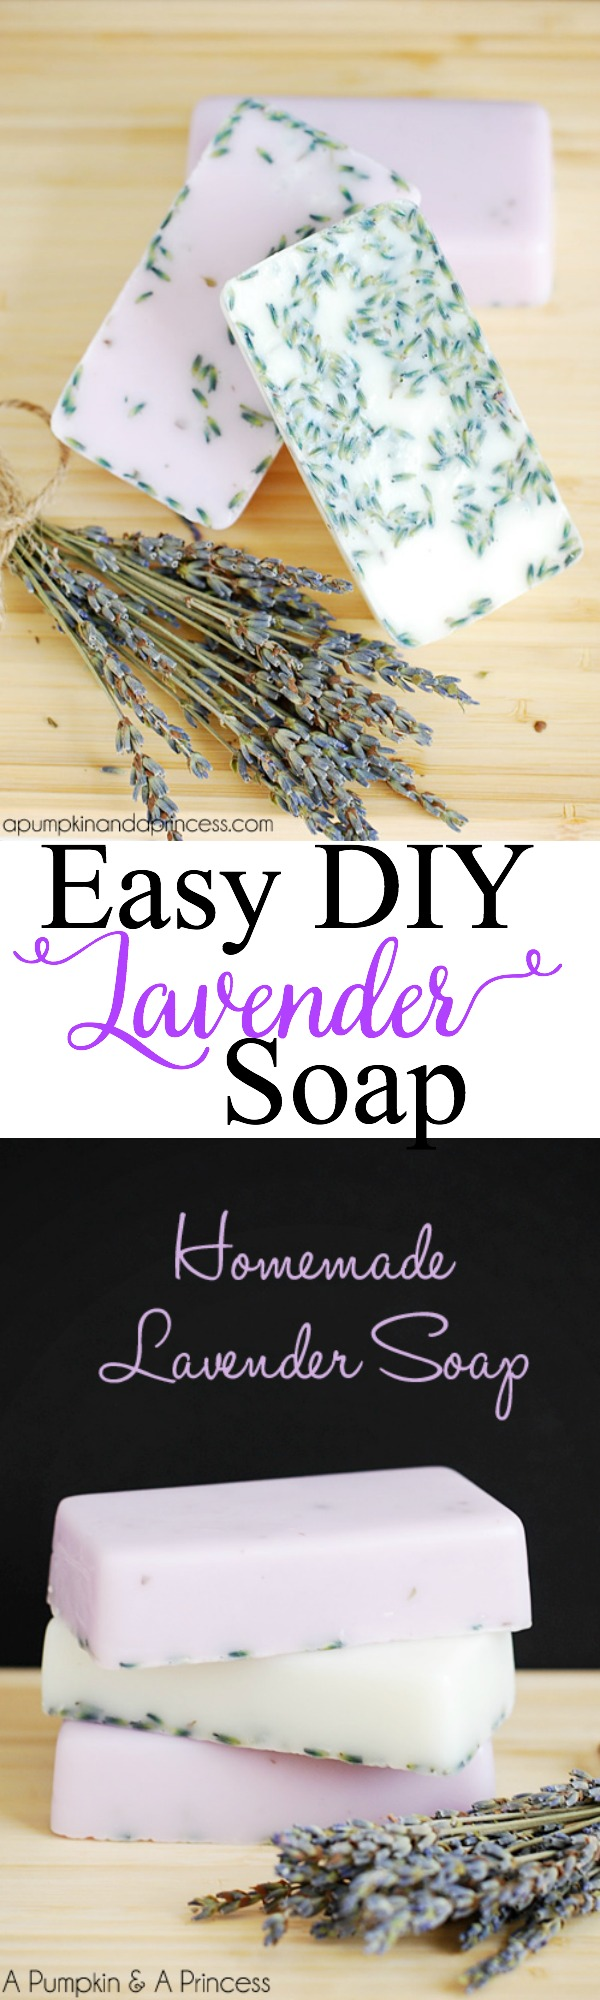 DIY Lavender Soap Tutorial